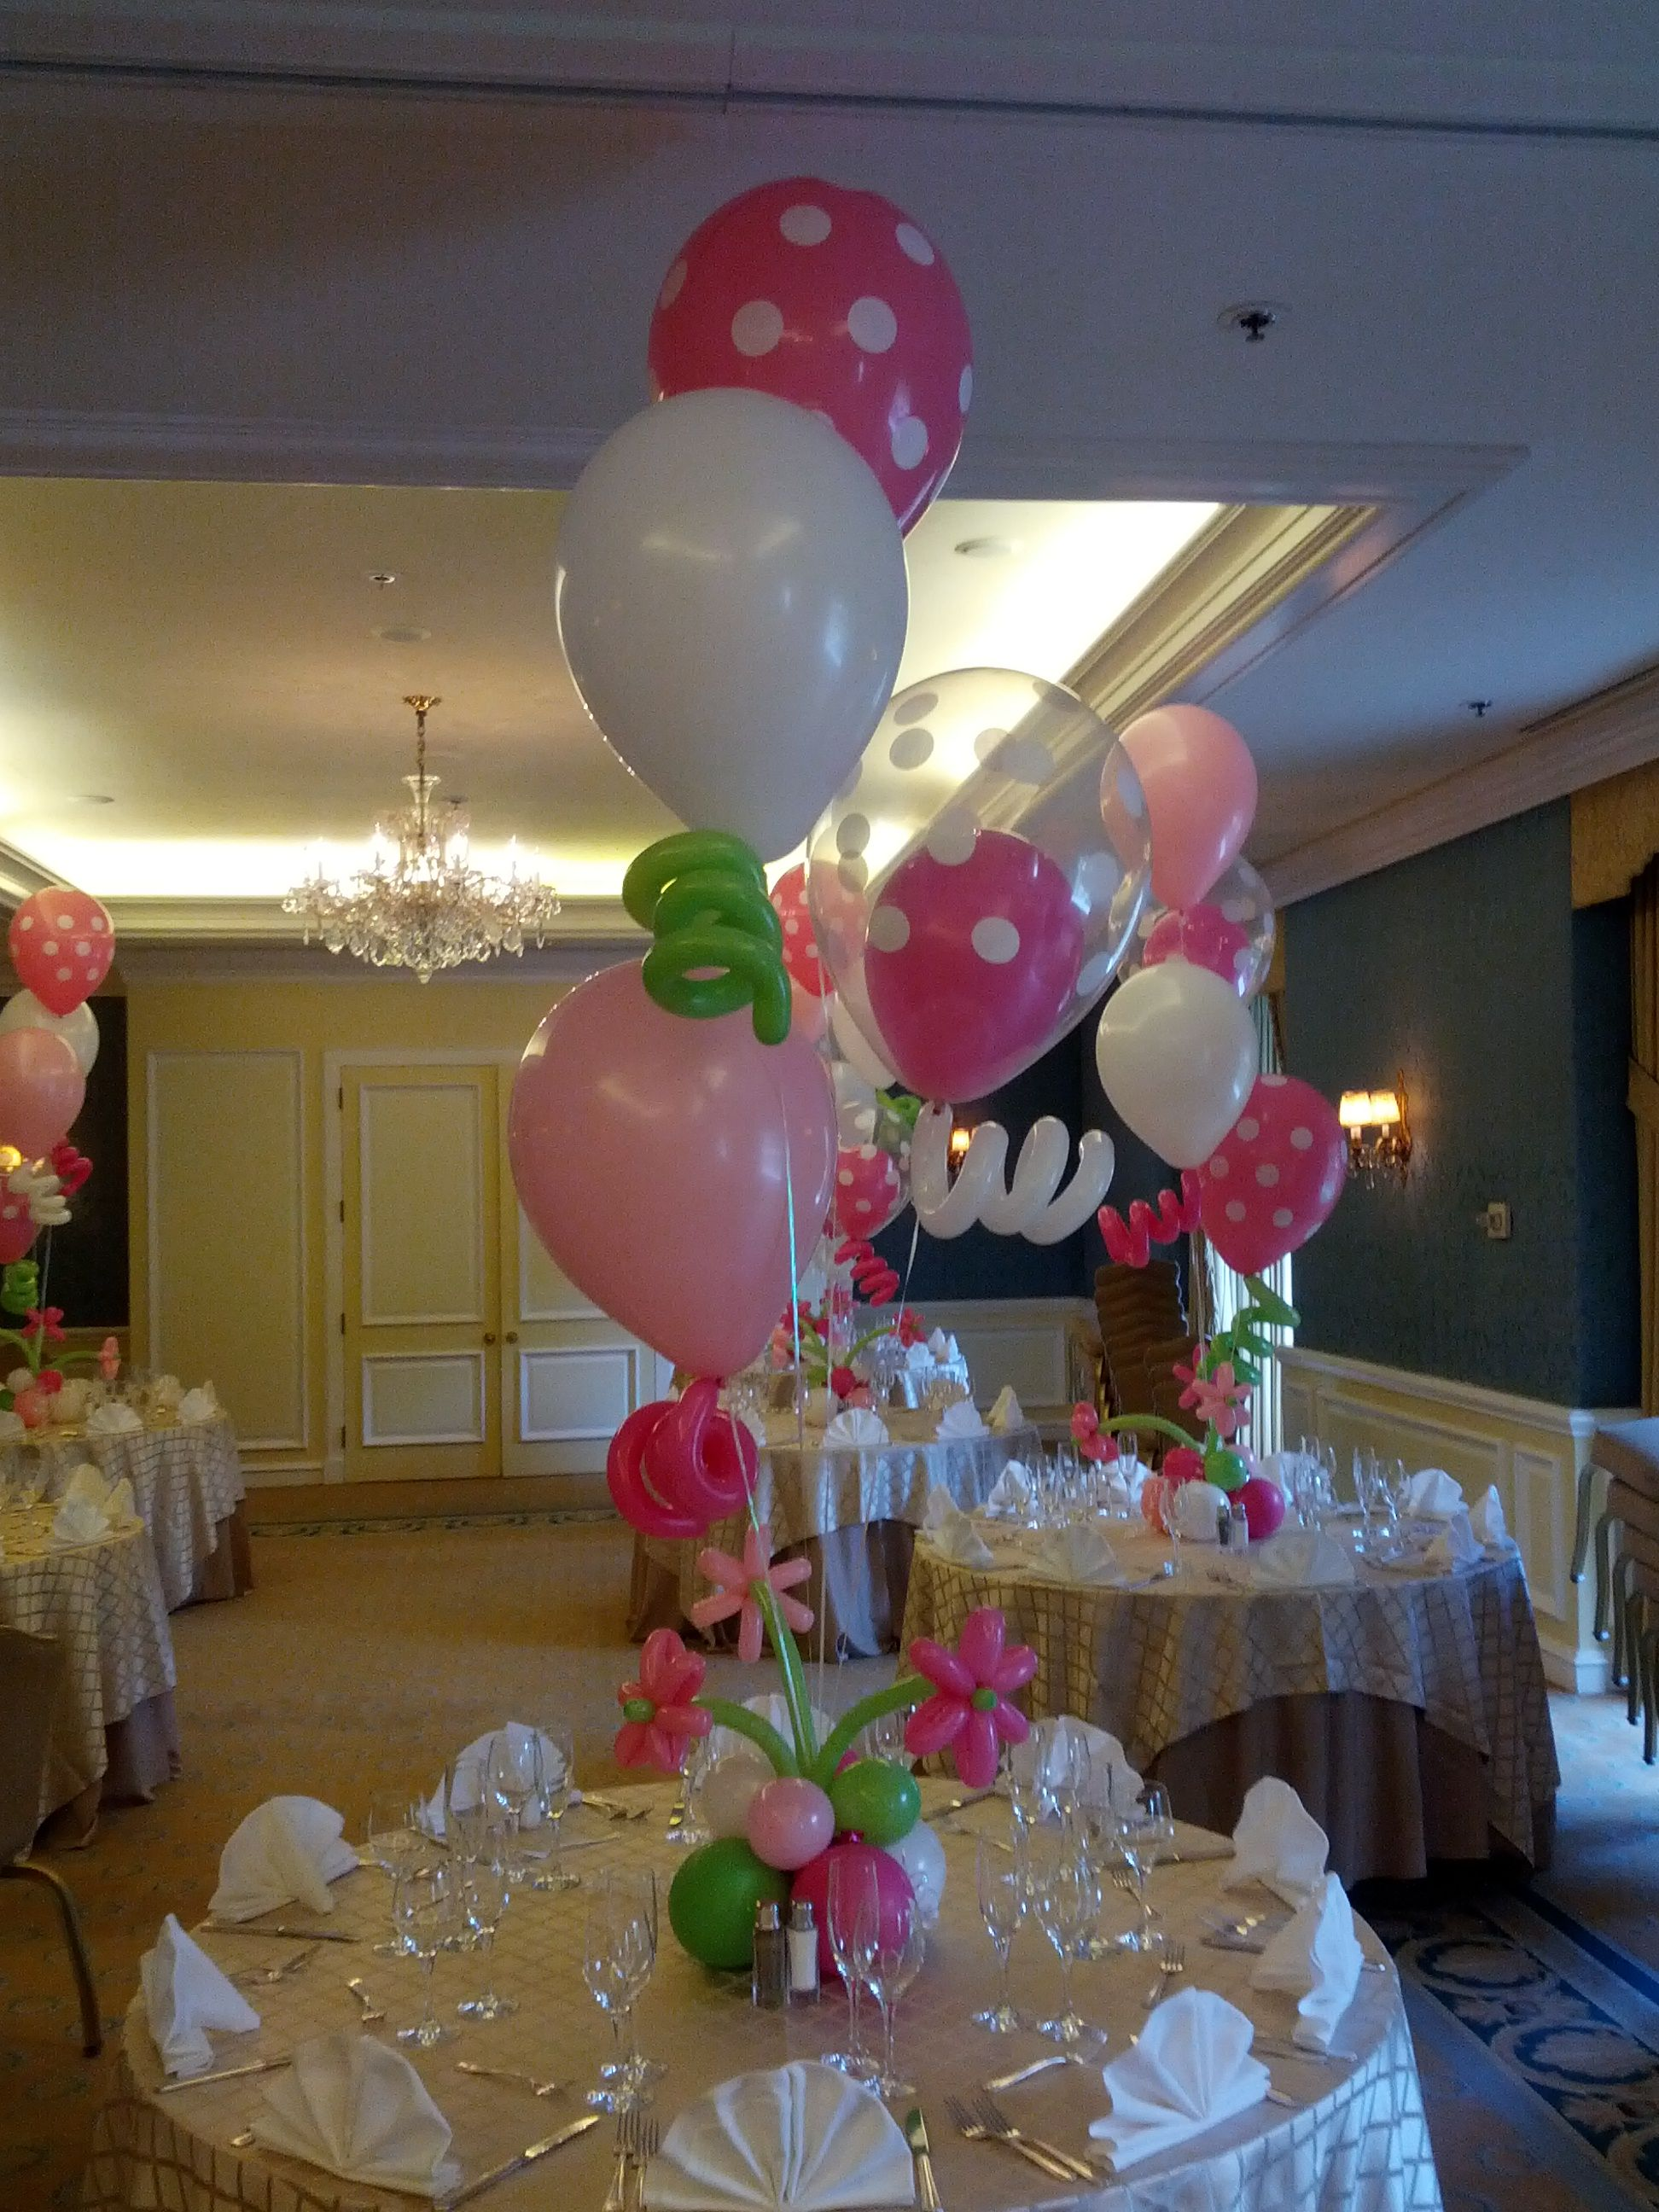 Balloon Centerpieces With Polka Dots & Flowers